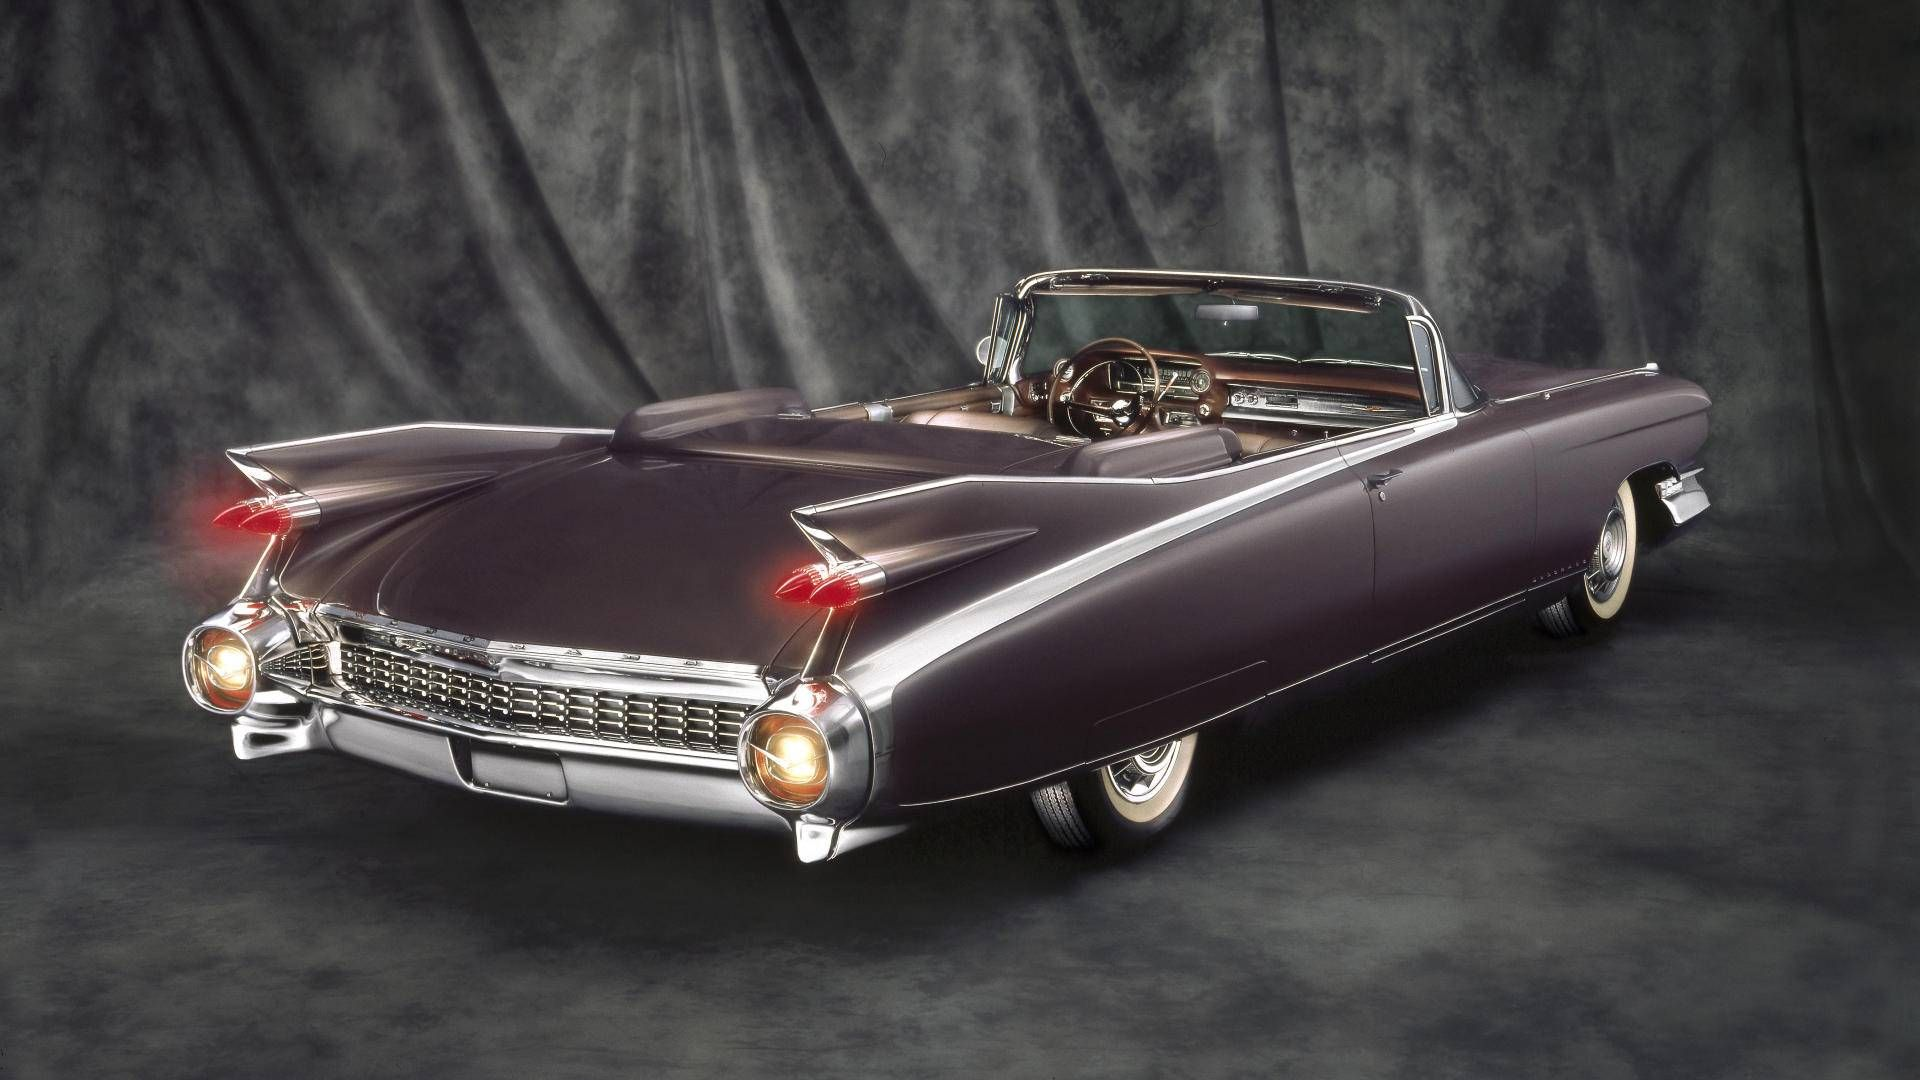 Cars Cadillac HD Wallpaper 1080x1920Px Wallpapers Free